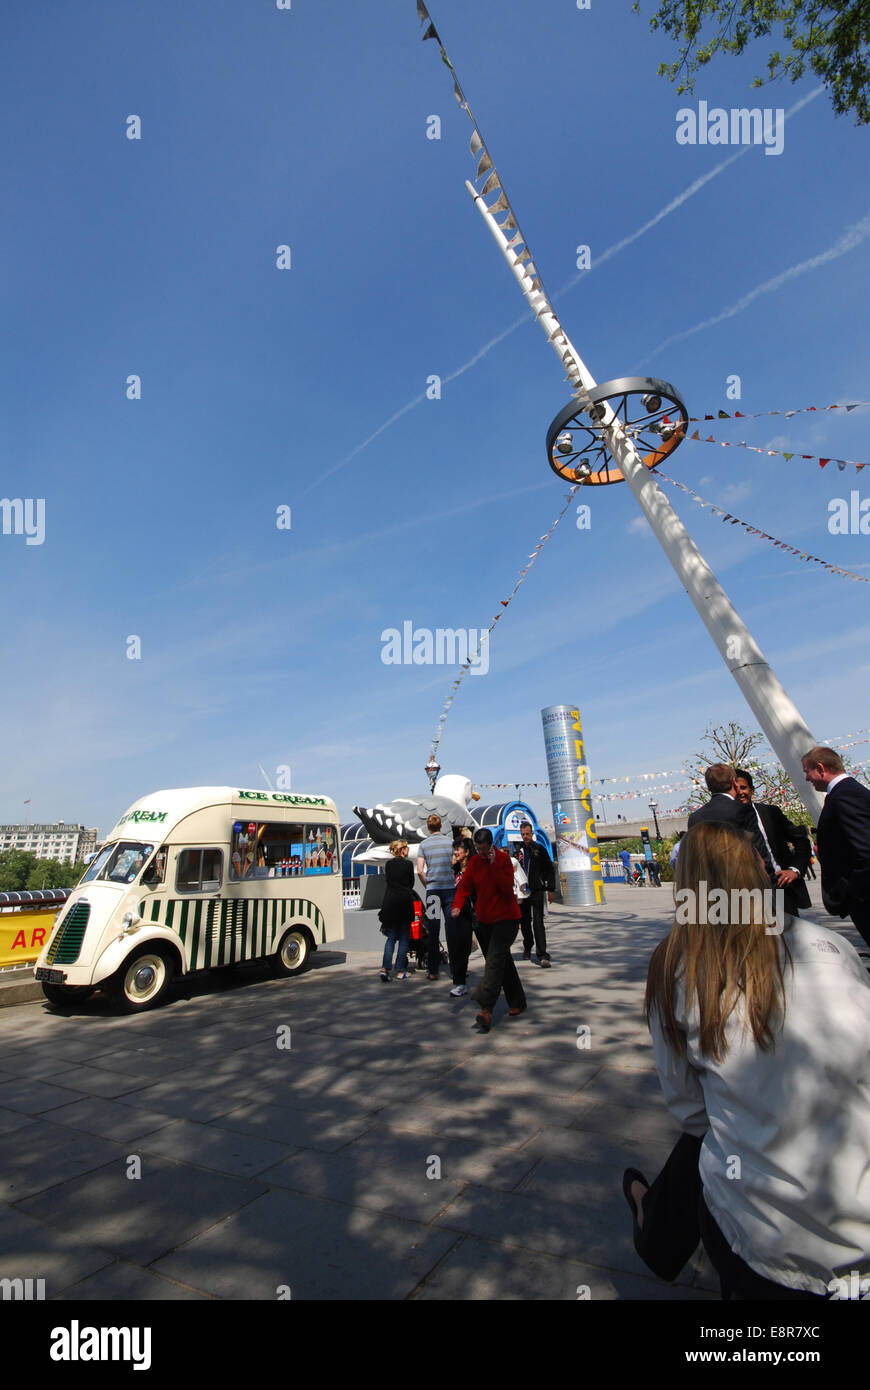 icecream van and tourists at London's South Bank United Kingdom - Stock Image